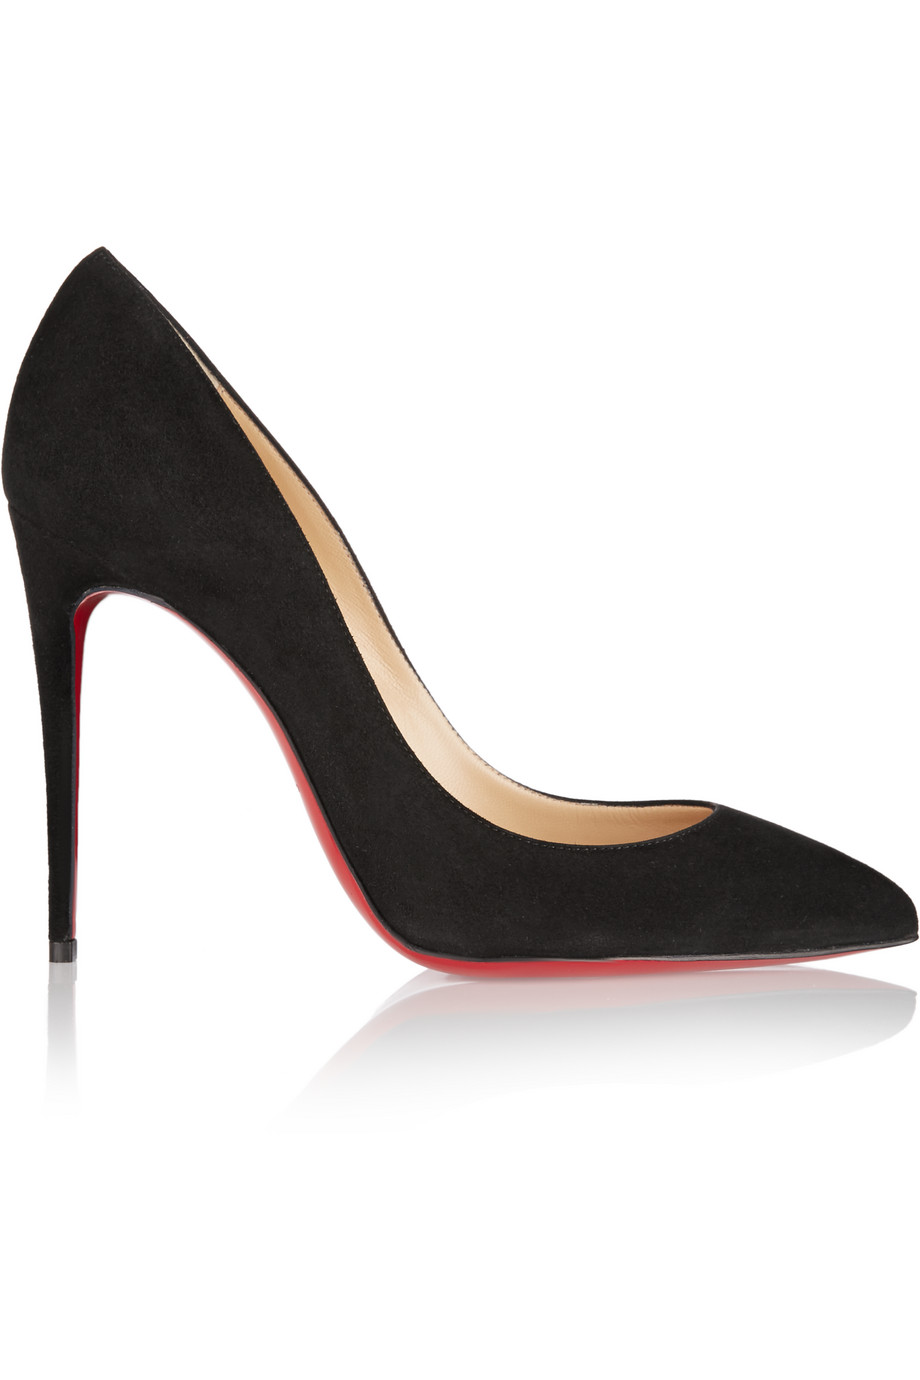 Christian Louboutin Pigalle Follies 100 Suede Pumps, Black, Women's US Size: 3.5, Size: 34